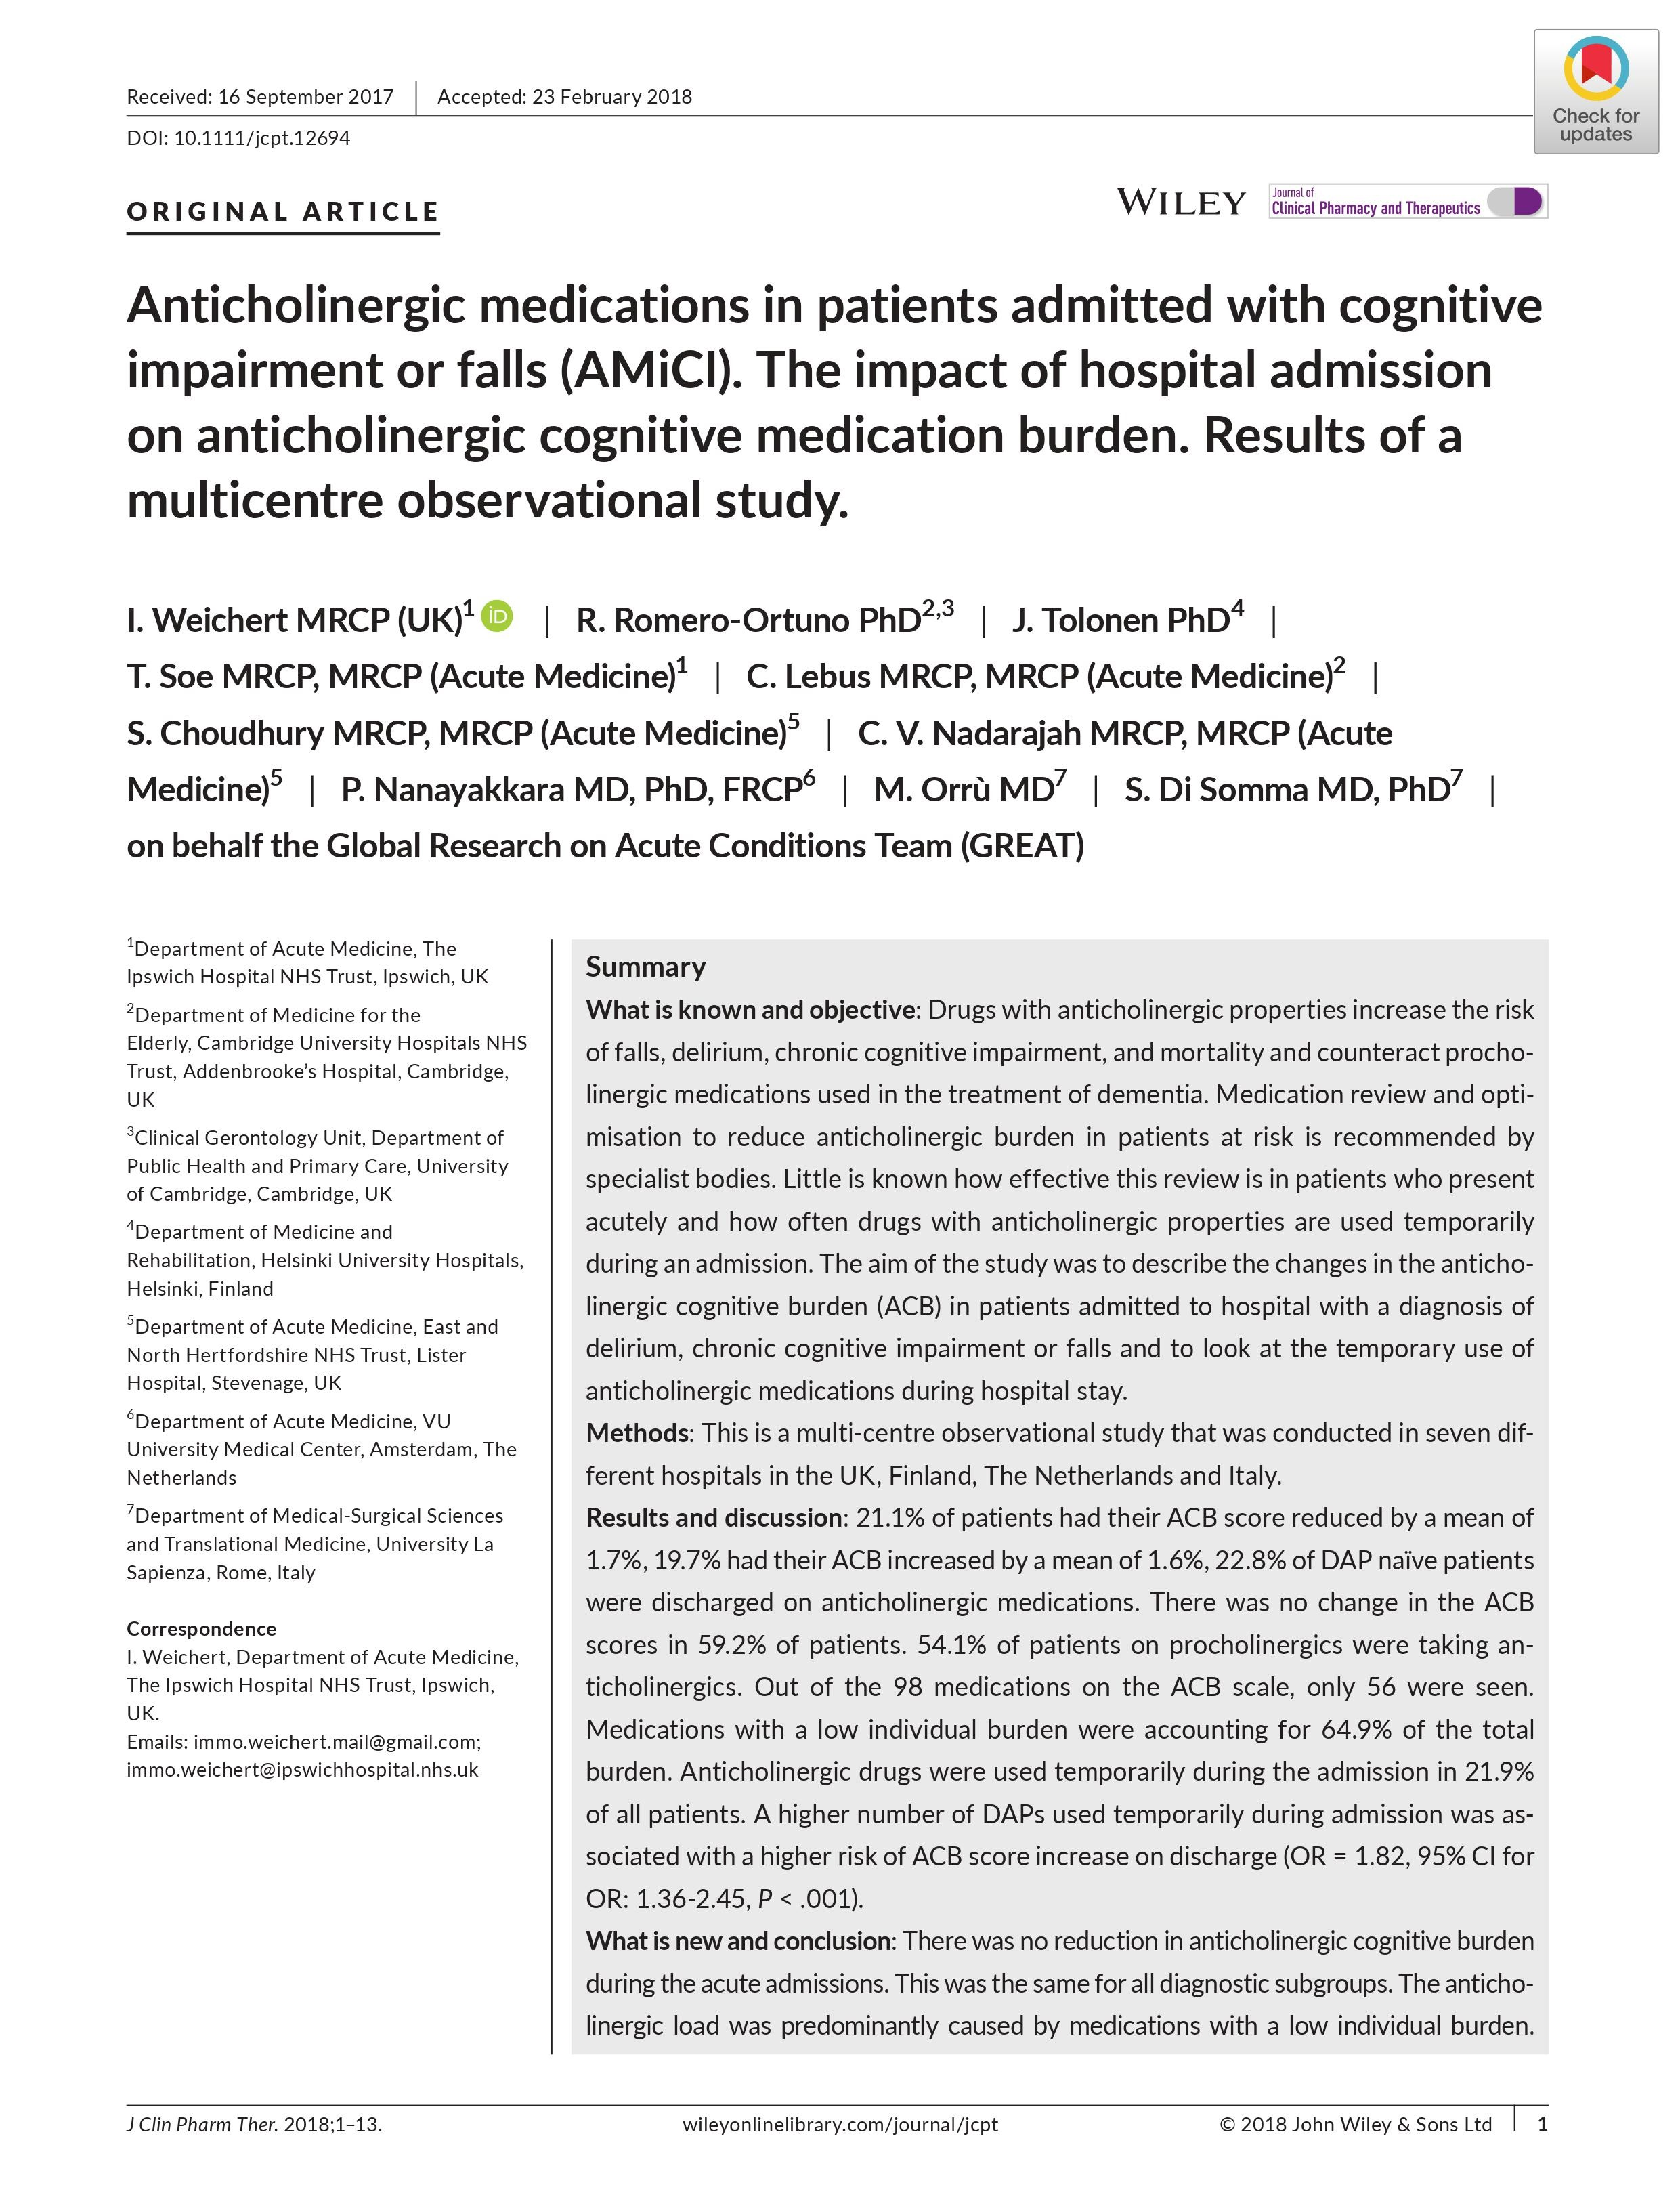 Immo Weichert, Roman Romero-Ortuno, Jukka Tolonen, Thandar Soe, Caroline Lebus, Sarah Choudhury, Channa V Nadarajah, Prabath Nanayakkara, Michela Orrù, Salvatore Di Somma, on behalf the Global Research on Acute Conditions Team (GREAT), Anticholinergic medications in patients admitted with cognitive impairment or falls (AMiCI). The impact of hospital admission on anticholinergic cognitive medication burden. Results of a multicentre observational study. Journal of Clinical Pharmacy and Therapeutics.2018(43):682–694. doi: 10.1111/jcpt.12694. Epub 2018 May 4.